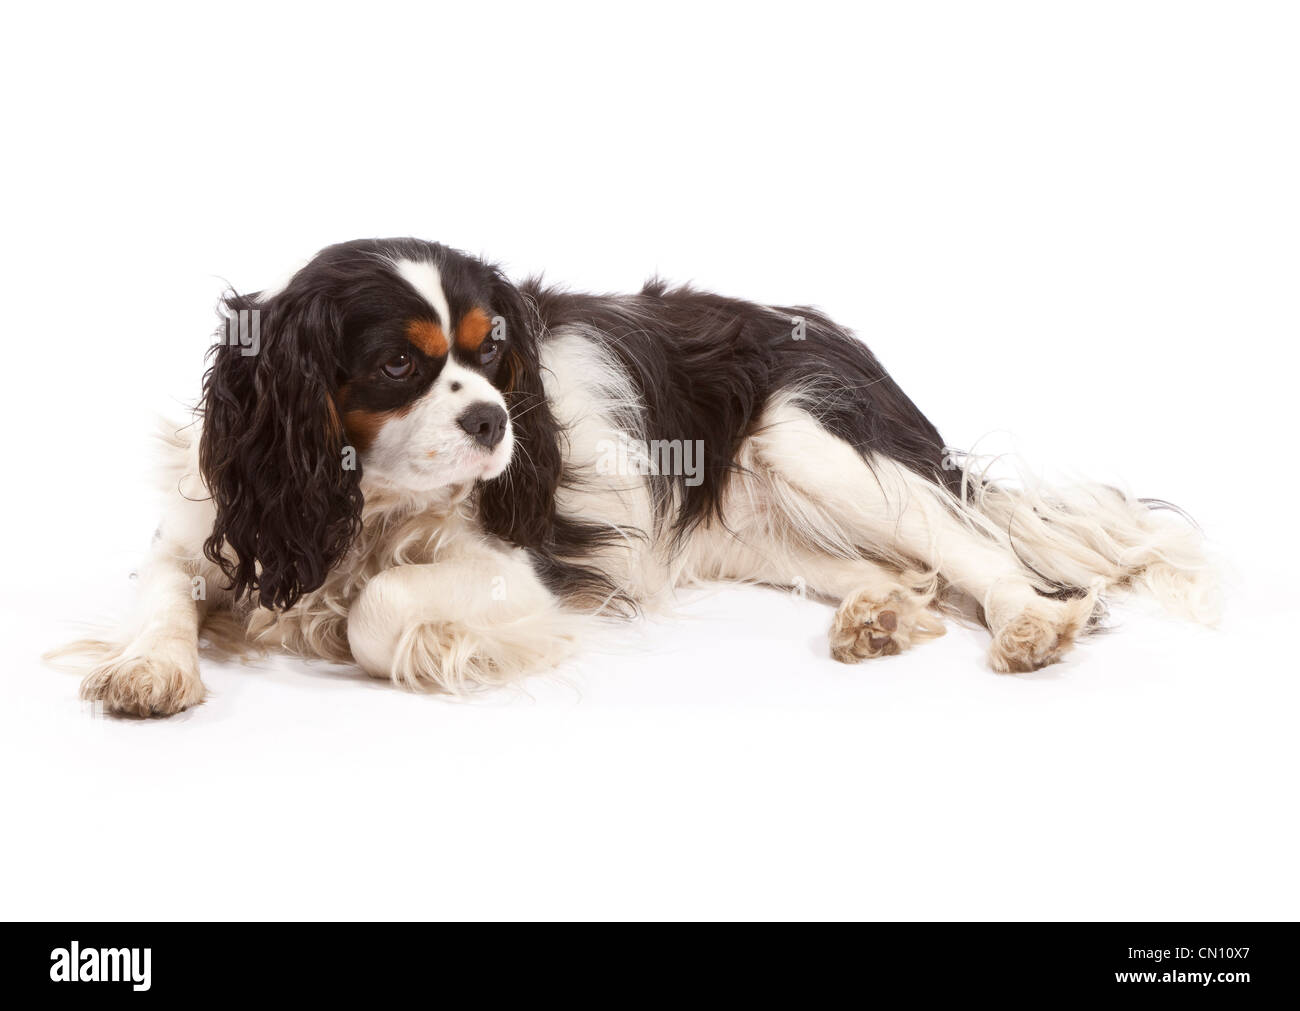 4 6 Year Male Cavalier King Charles Spaniel: Cavalier King Charles Spaniel Year Stock Photos & Cavalier